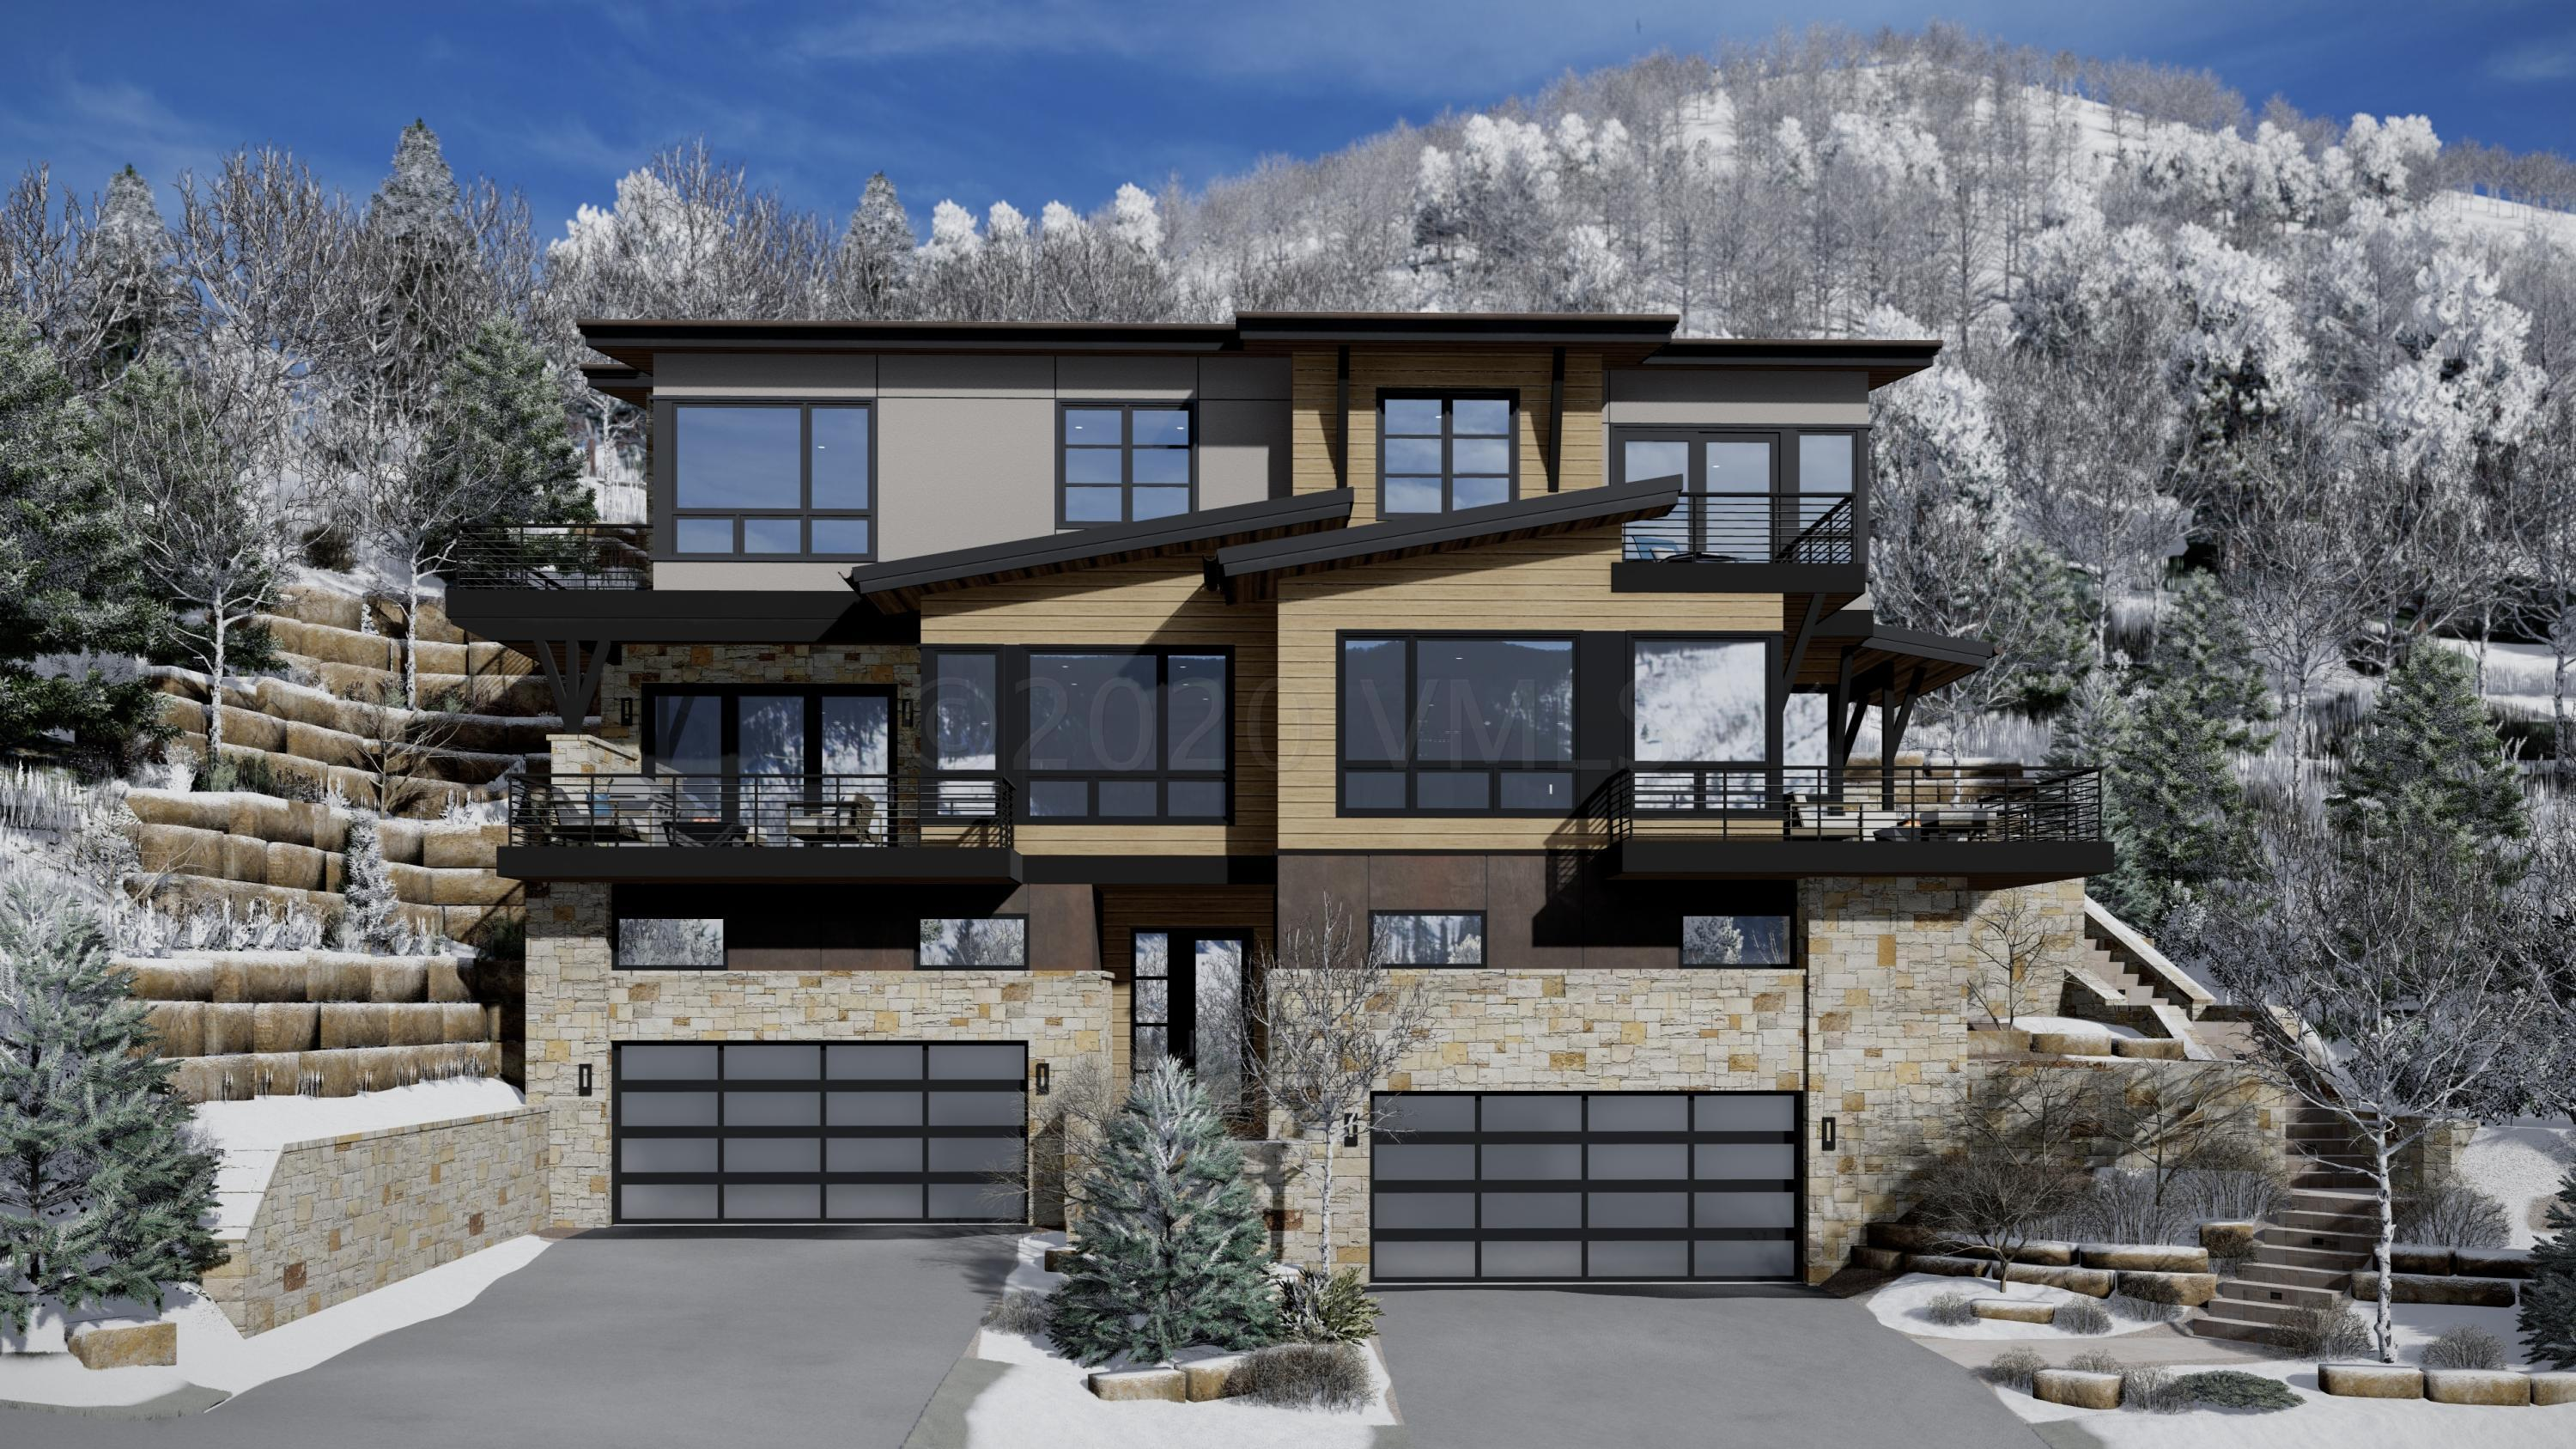 This new construction mountain modern masterpiece designed by Scott Turnipseed brings the outdoors in. Take in the sweeping, south-facing, sun drenched mountain views which are among the Vail Valley's best vistas. The dramatic living room features a floor-to-ceiling slate grey Astria-Rhapsody fireplace, and expansive windows encapsulating the lush vegetation just west of the Vail mountain ski slopes.  The fireplace serves as the centerpiece of the room separating the living room from the dining area as part of the open floor plan on the main level.  With a clean and contemporary design coupled with a serene ambiance, enjoy effortless living. The gourmet kitchen has modern details and a sophisticated design, featuring ultra white quartz countertops, gorgeous imported Arrex Le Cucine Italian cabinets and white oak floors.  Additionally, the high-end appliances shall be appreciated by the most critically acclaimed chefs including Subzero and Wolf, Brizo hardware and fixtures, Italian Barausse Feel Plus Doors in a Otter color with a trimless drywall return, and designer lighting that is both great for gloomy days or sets just the right mood for evenings.  The bright and open kitchen flows beautifully into the dining area, bar, living room and the outdoor patio. The master suite has incredible views and the bathroom has gorgeous grey glass tile.  All bathrooms have European glass and curbless entry, Brizo fixtures, and unique materials from one another but all have that same consistent feel within the home. The modern bunk room also has a sitting area for kids to watch a movie or play games. The entrance to the house has a convenient mud room for a houseful of active people with plenty of room for gear.  What doesn't make sense to be kept indoors has plenty of space in the 2-car garage. With limited inventory of new construction, we invite you to discover this mountain contemporary design masterpiece. Estimated completion March 2021. Visit mls-West.NewVailHomes.com.